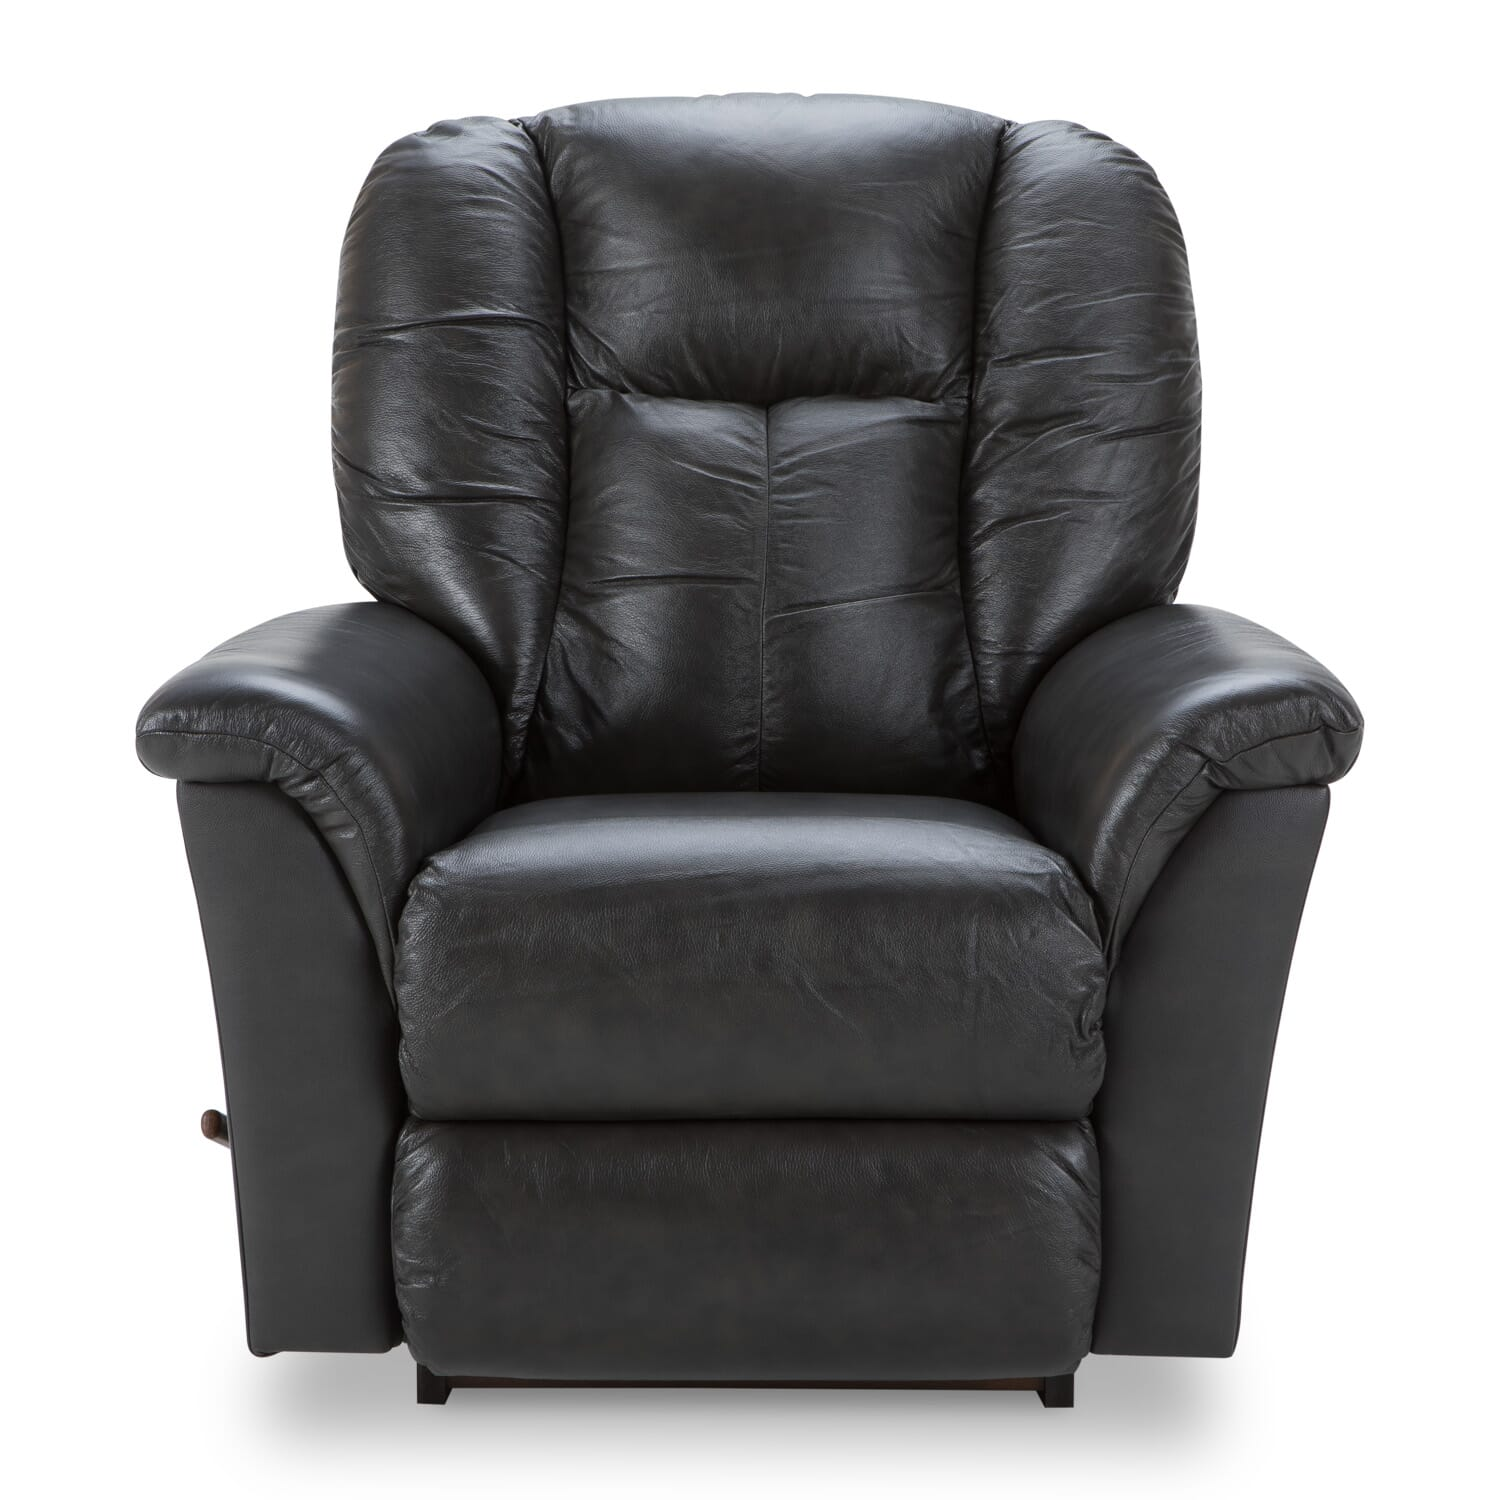 Jasper Leather Rocker Recliner Recliners Sale Wg Amp R